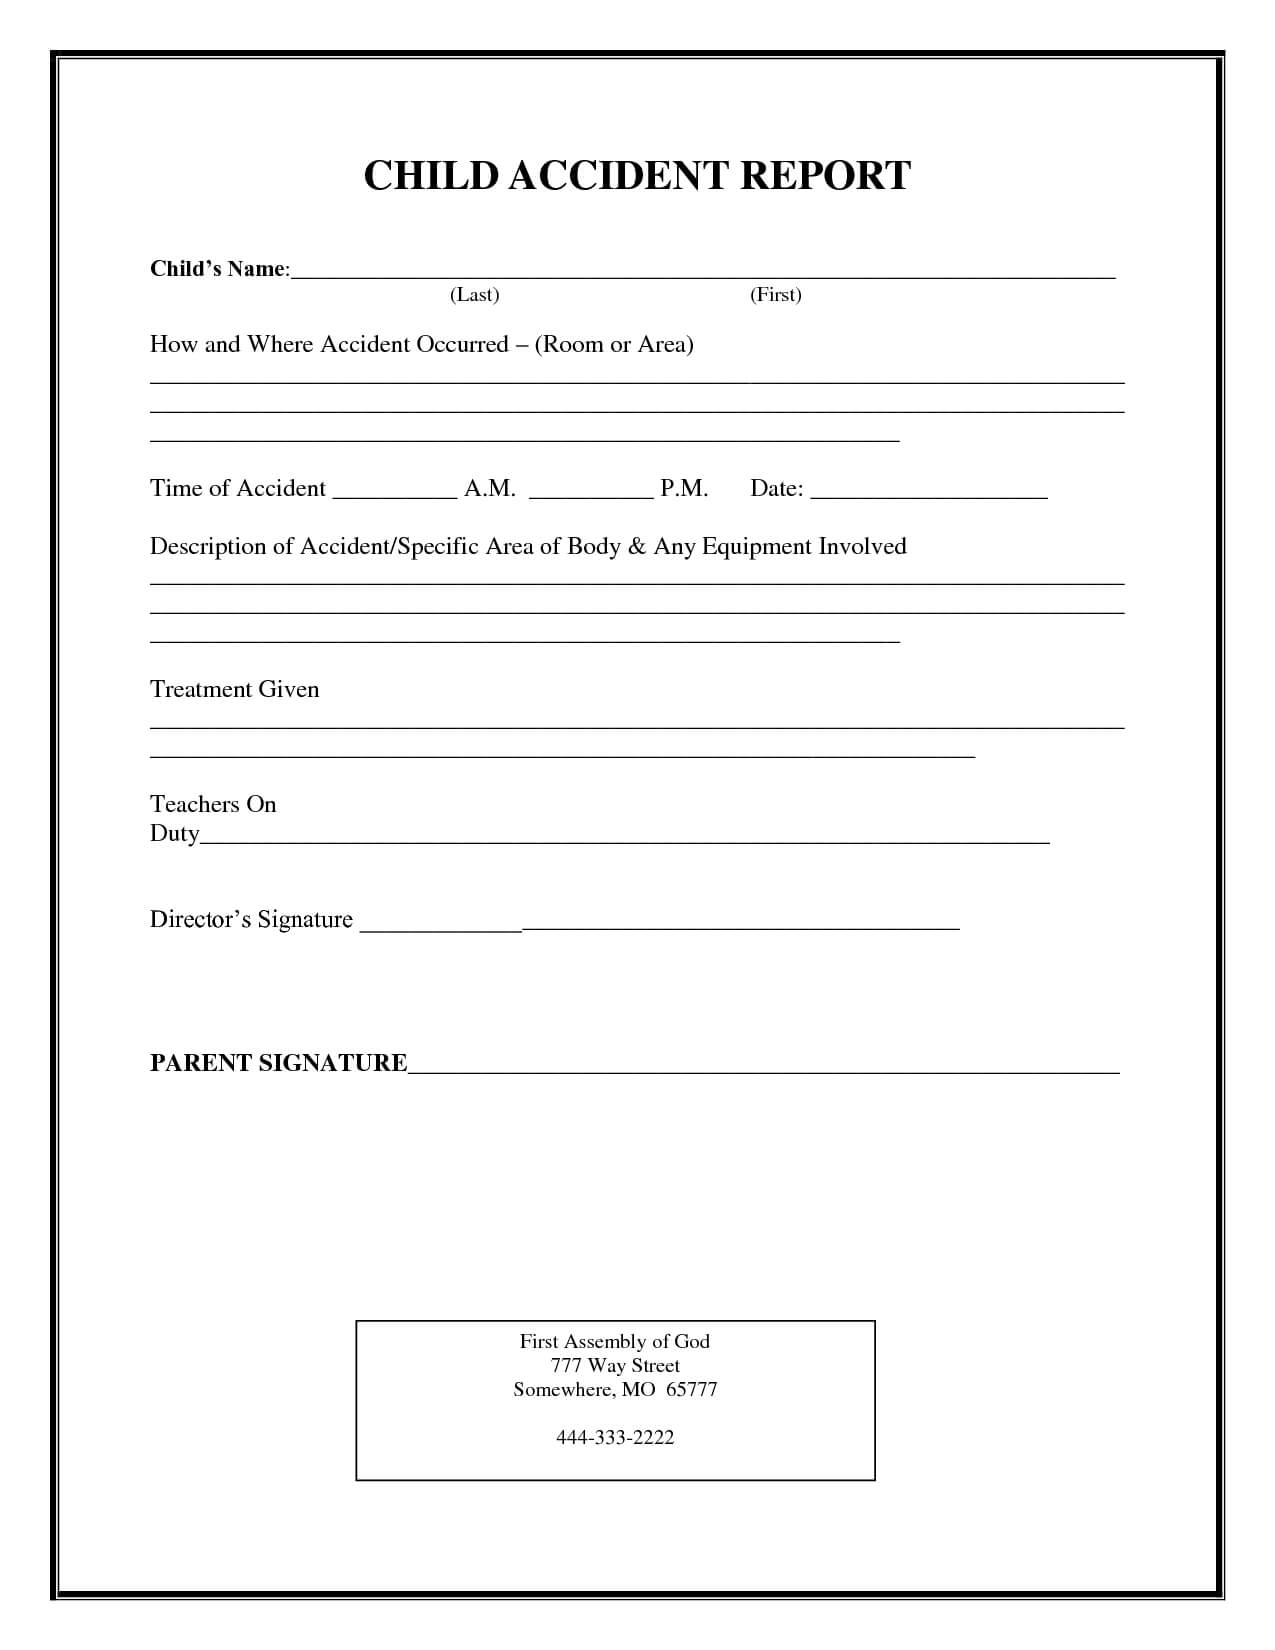 Incident Report Form Child Care | Child Accident Report Inside School Incident Report Template